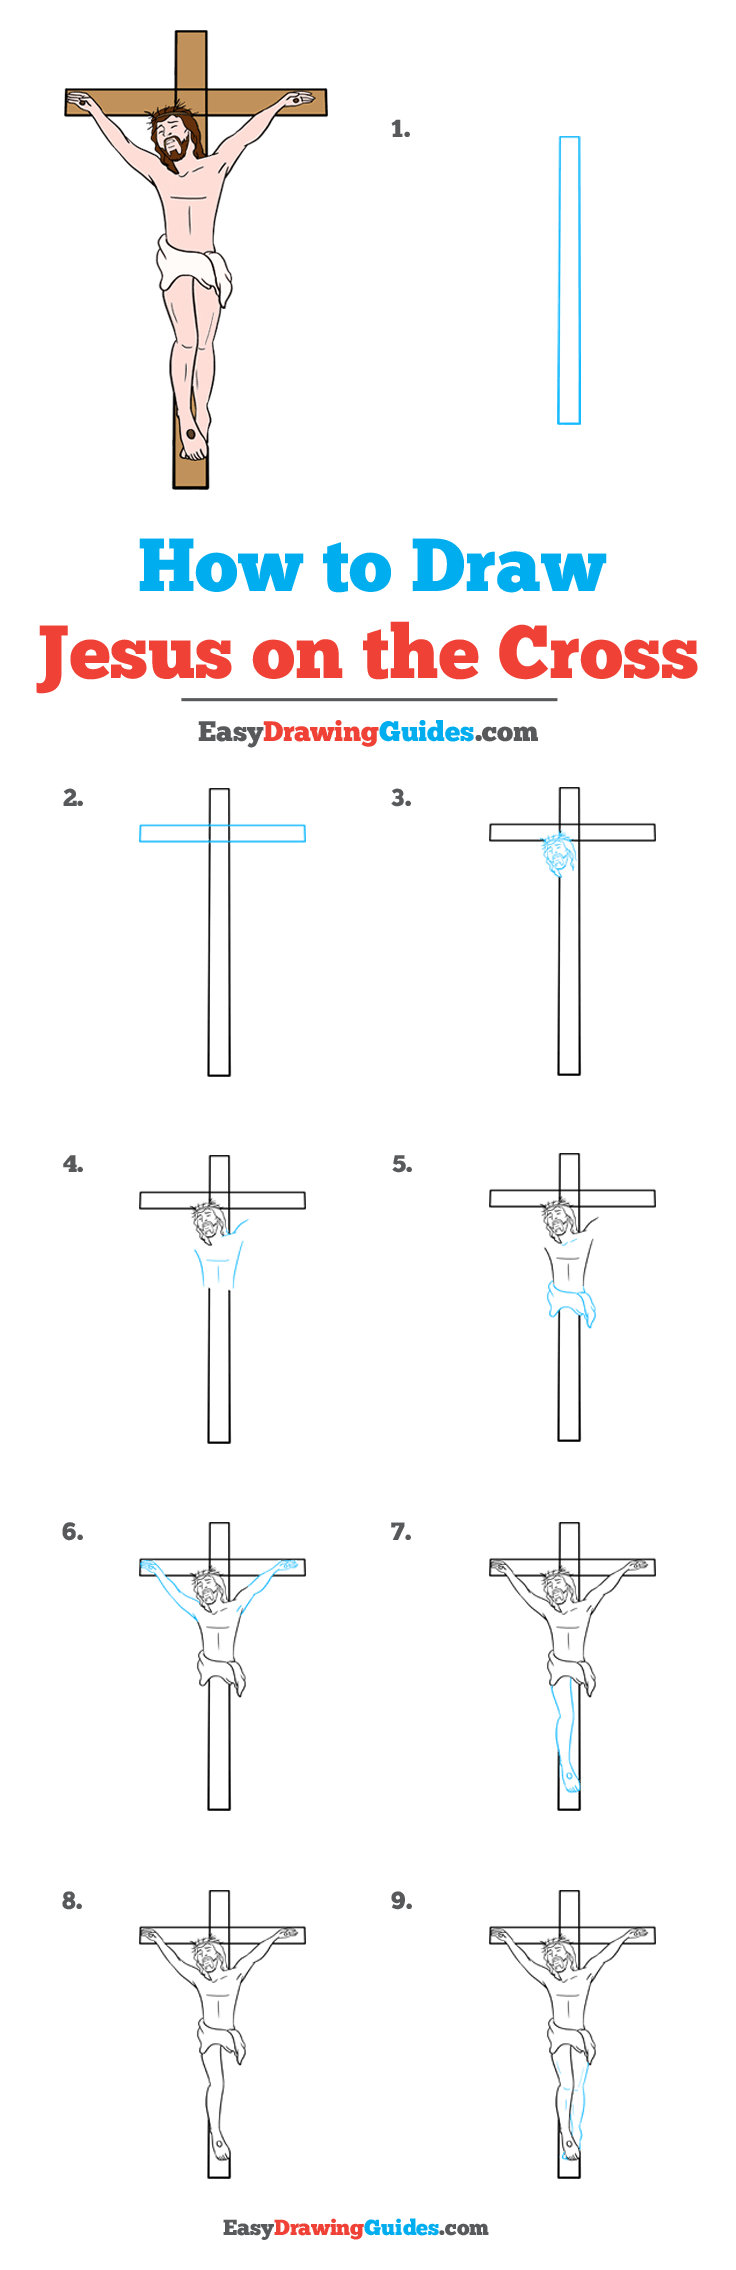 How to Draw Jesus on the Cross Step by Step Tutorial Image